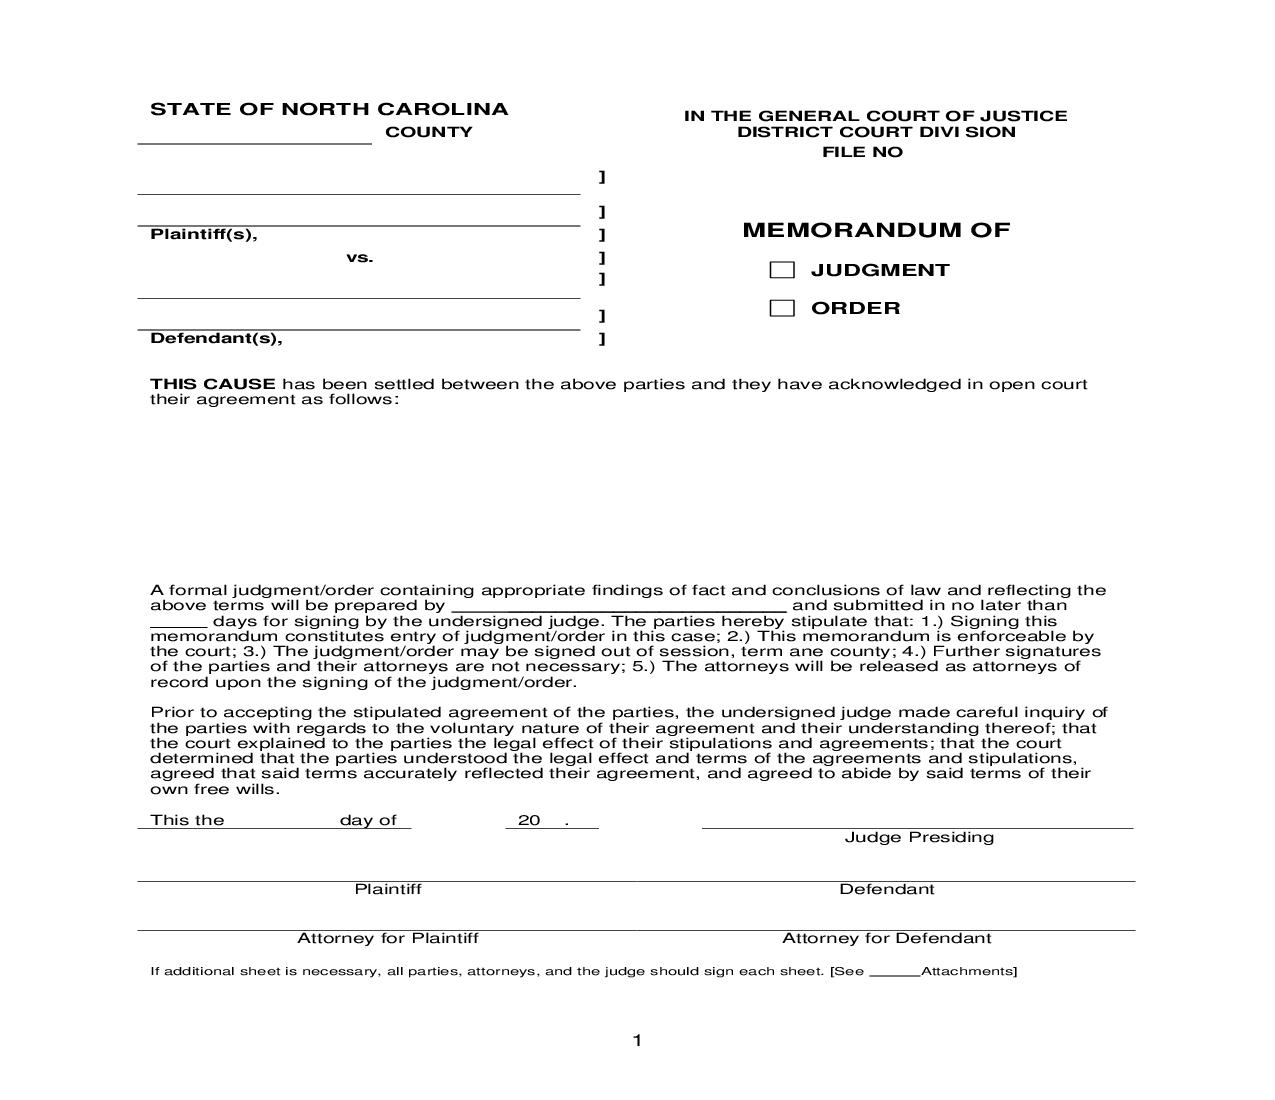 Memorandum Of Judgment Order {2} | Pdf Fpdf Doc Docx | North Carolina